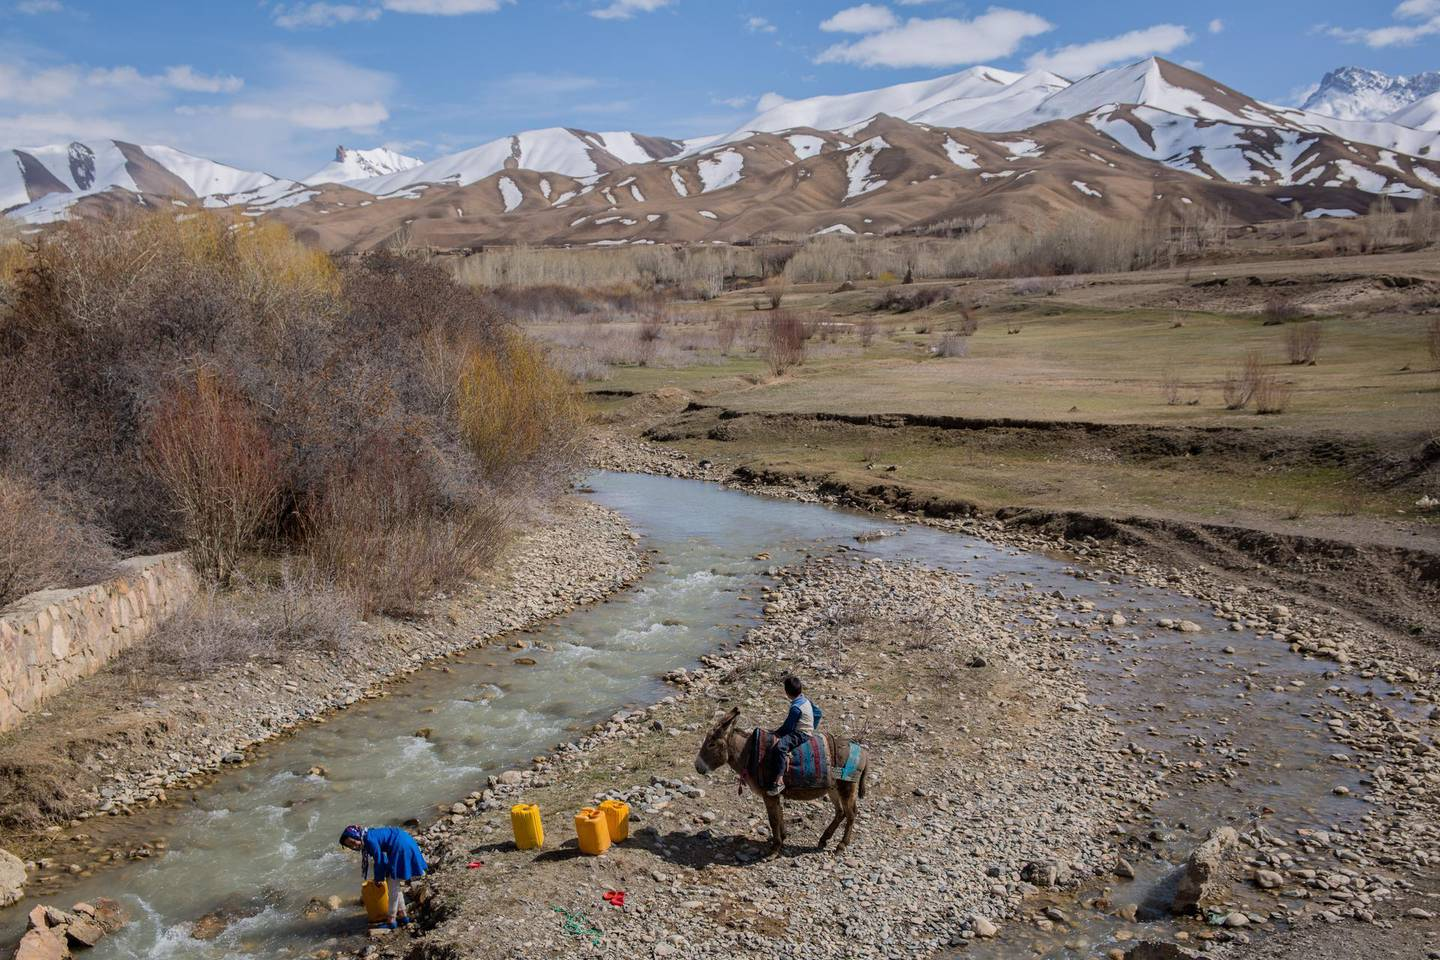 A rural scene from Bamyan; an area where tourists come for trekking and camping and often stay in local villages.